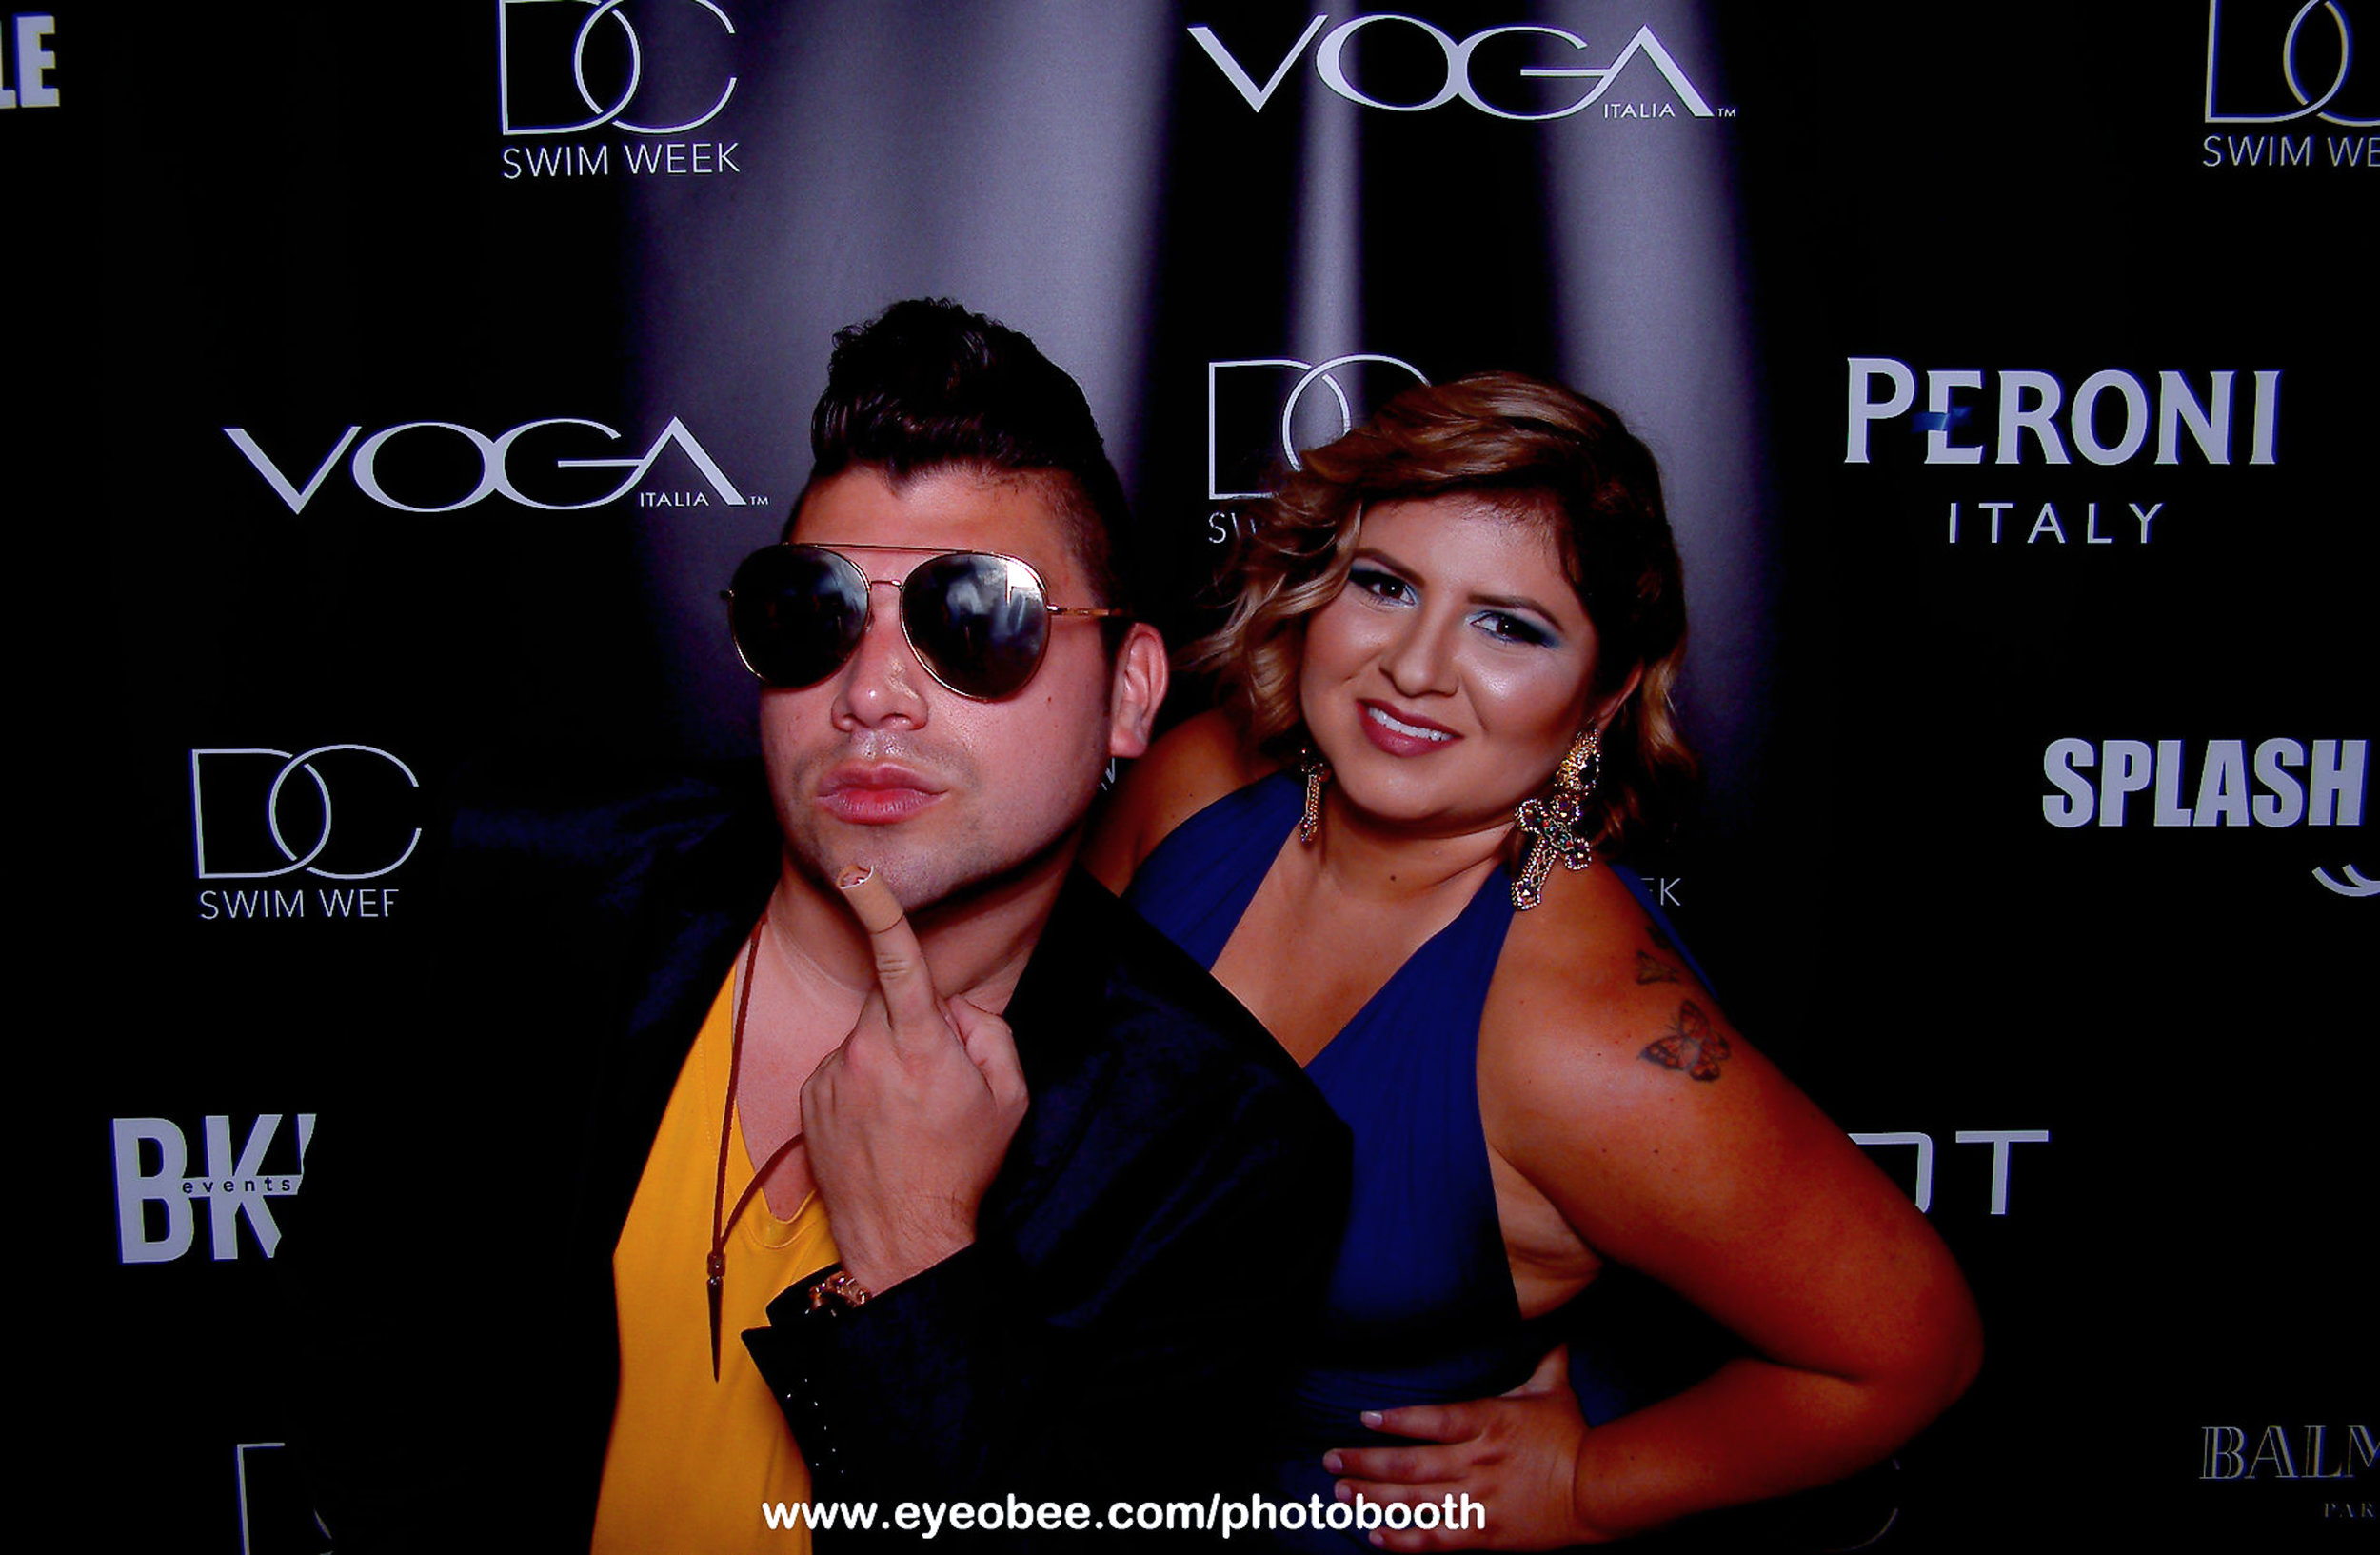 eyeobee PhotoBooth - DCSW-239.jpg